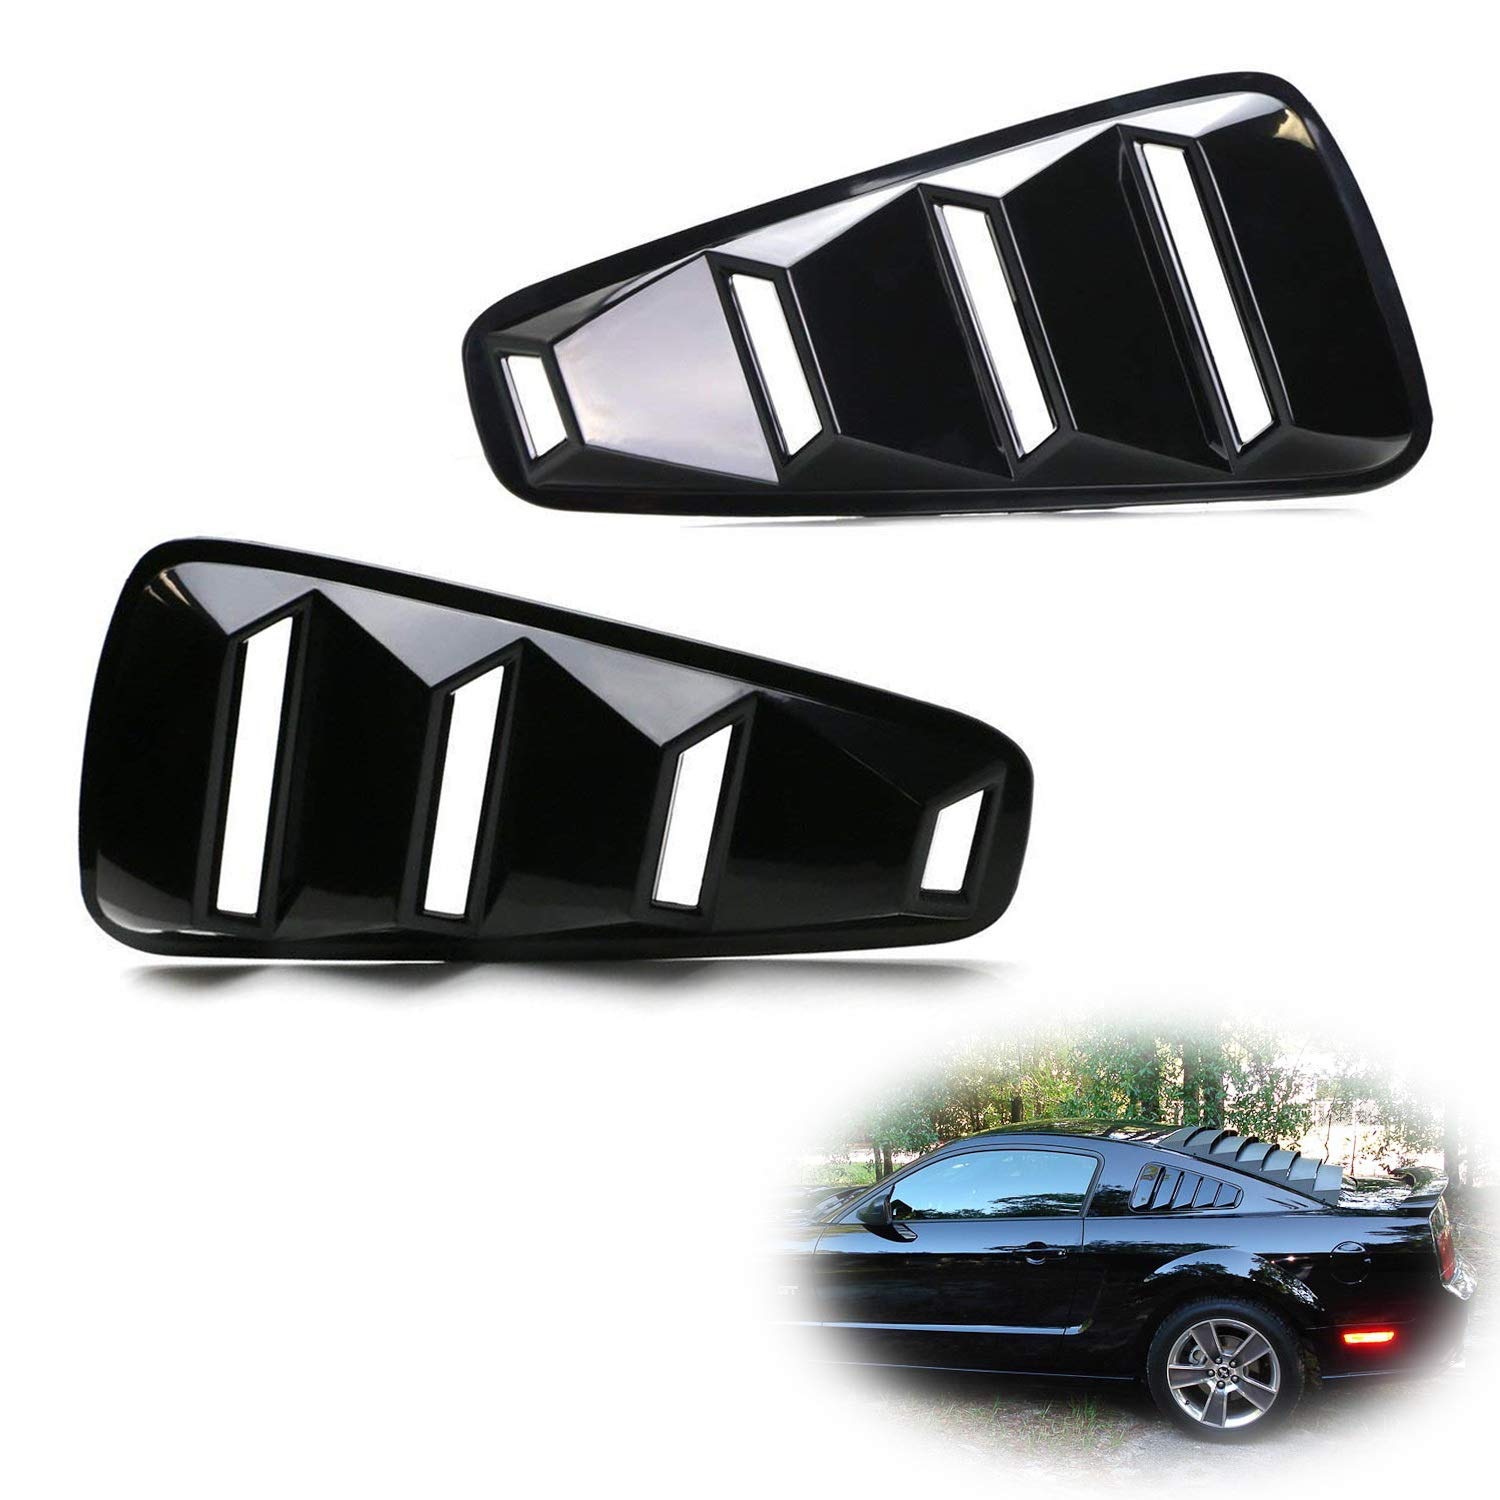 iJDMTOY Left/Right Glossy Finish Racing Style Rear Side Window Scoop Air Vent/Louver Shades For 2005-2014 Gen5 Ford Mustang iJDMTOY Auto Accessories Air Vent Scoop Louver Assembly Assy Kit